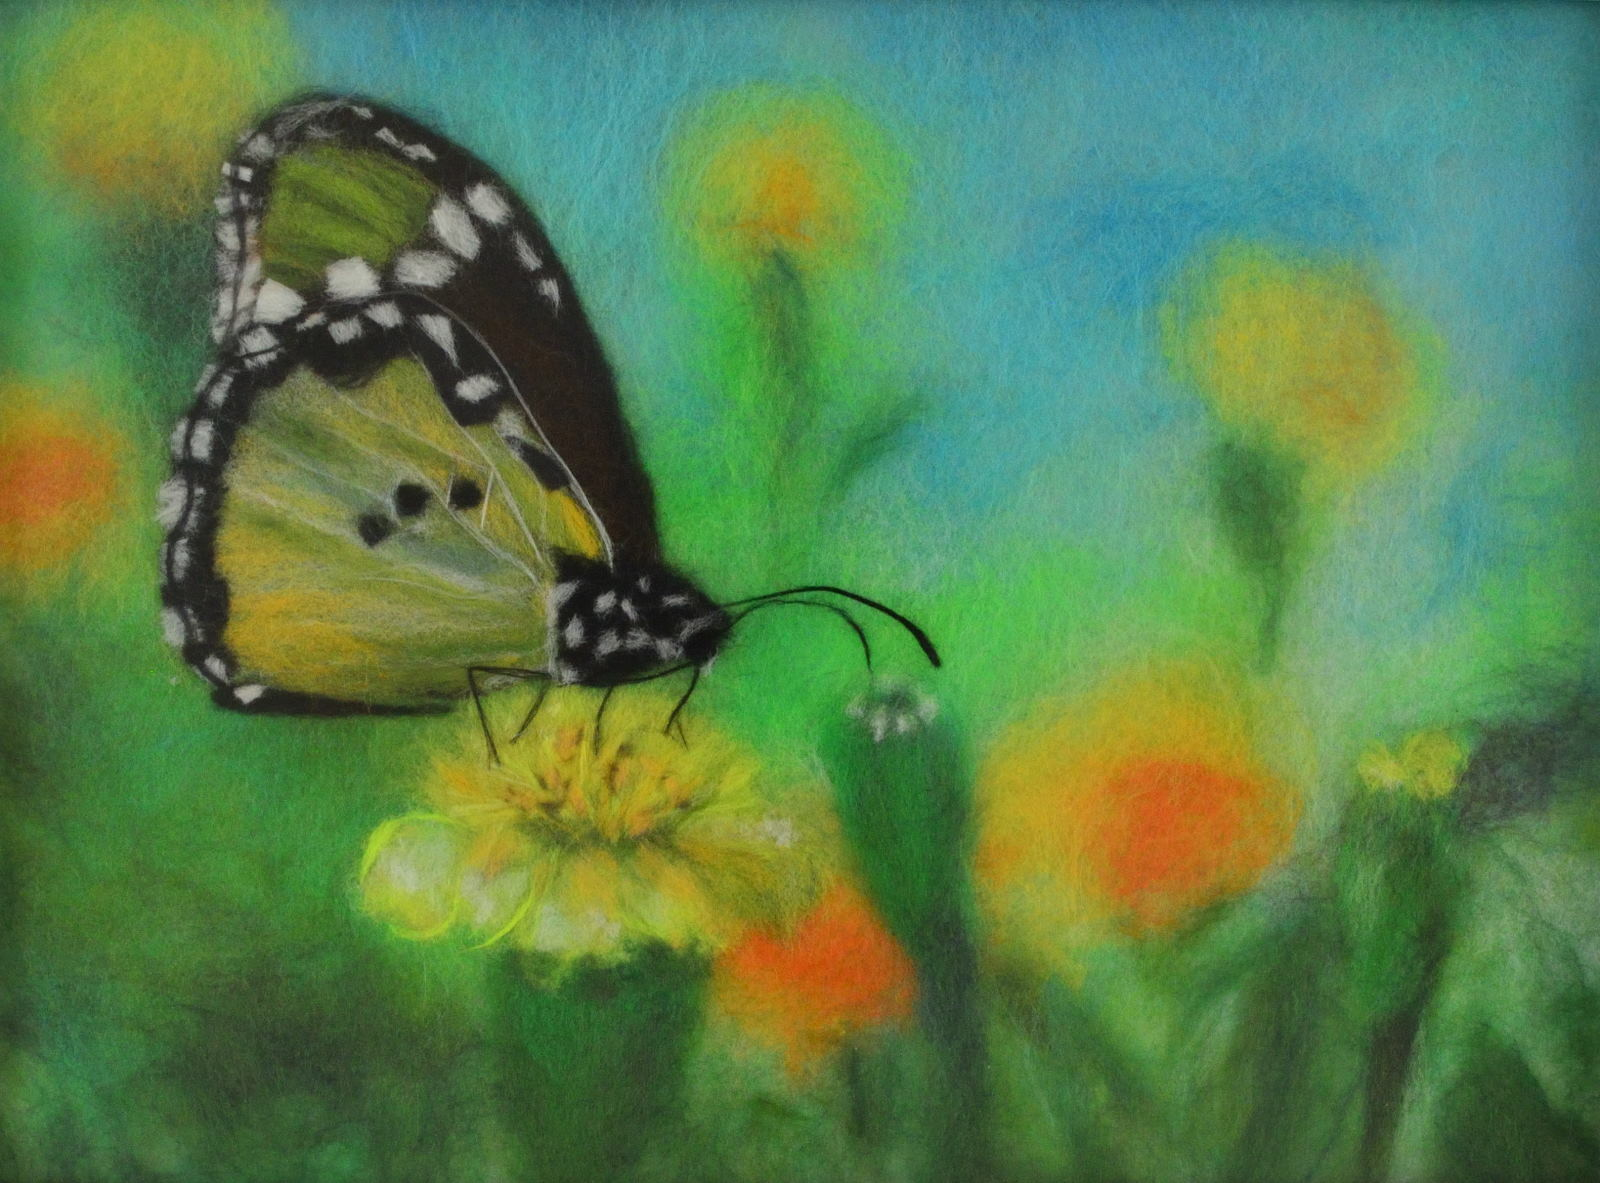 Wool picture with a butterfly sitting on a flower. Wool Art Gallery